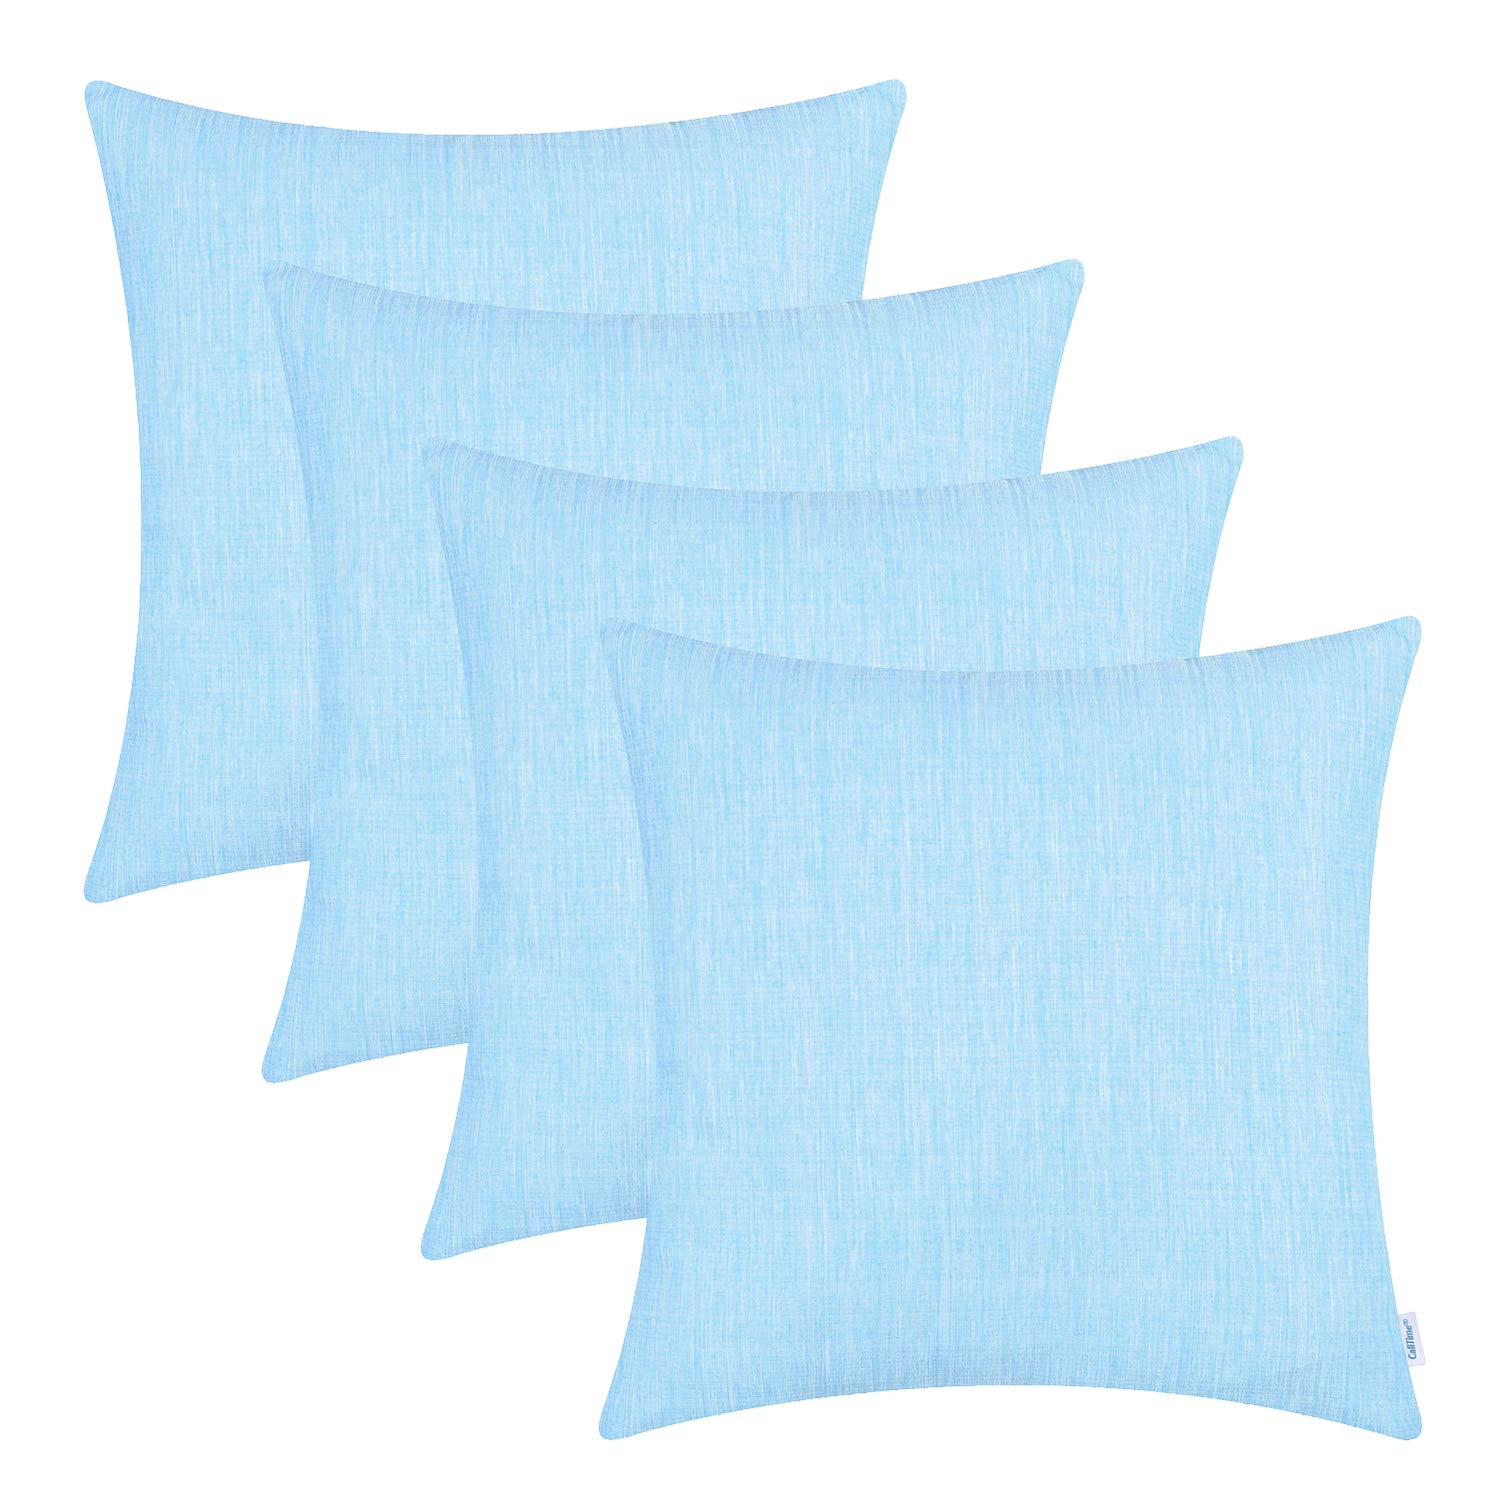 CaliTime Pack of 4 Throw Pillow Covers Cases for Couch Sofa Home Decoration Light Weight Two Tones Faux Linen 18 X 18 Inches Main Blue